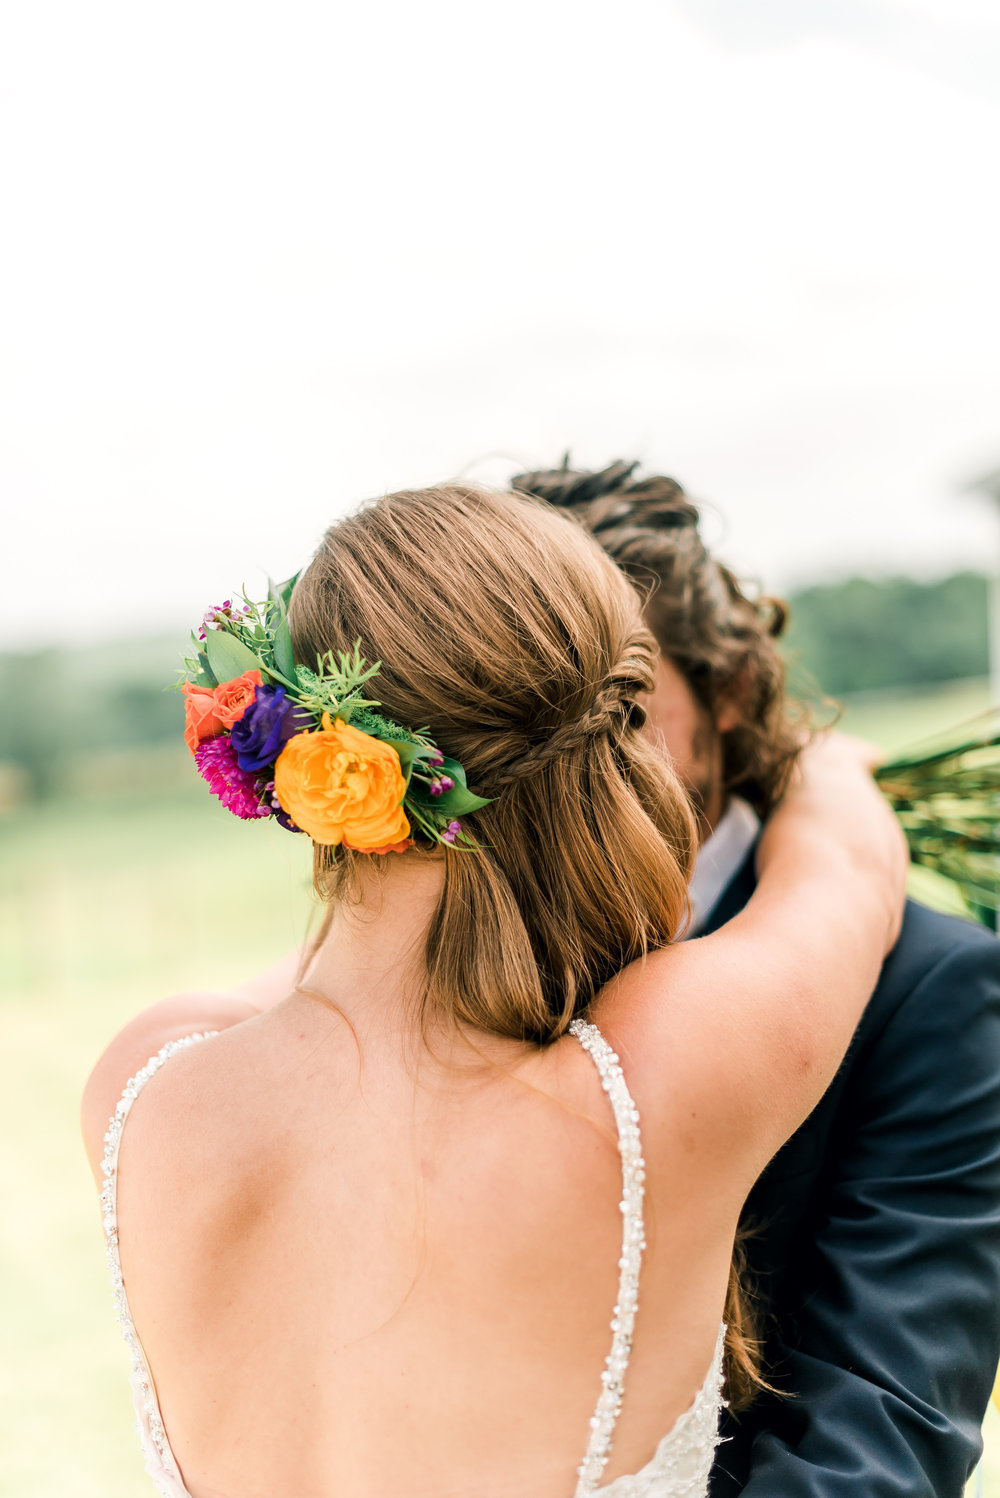 Bohemian Updo with Flowers.jpg